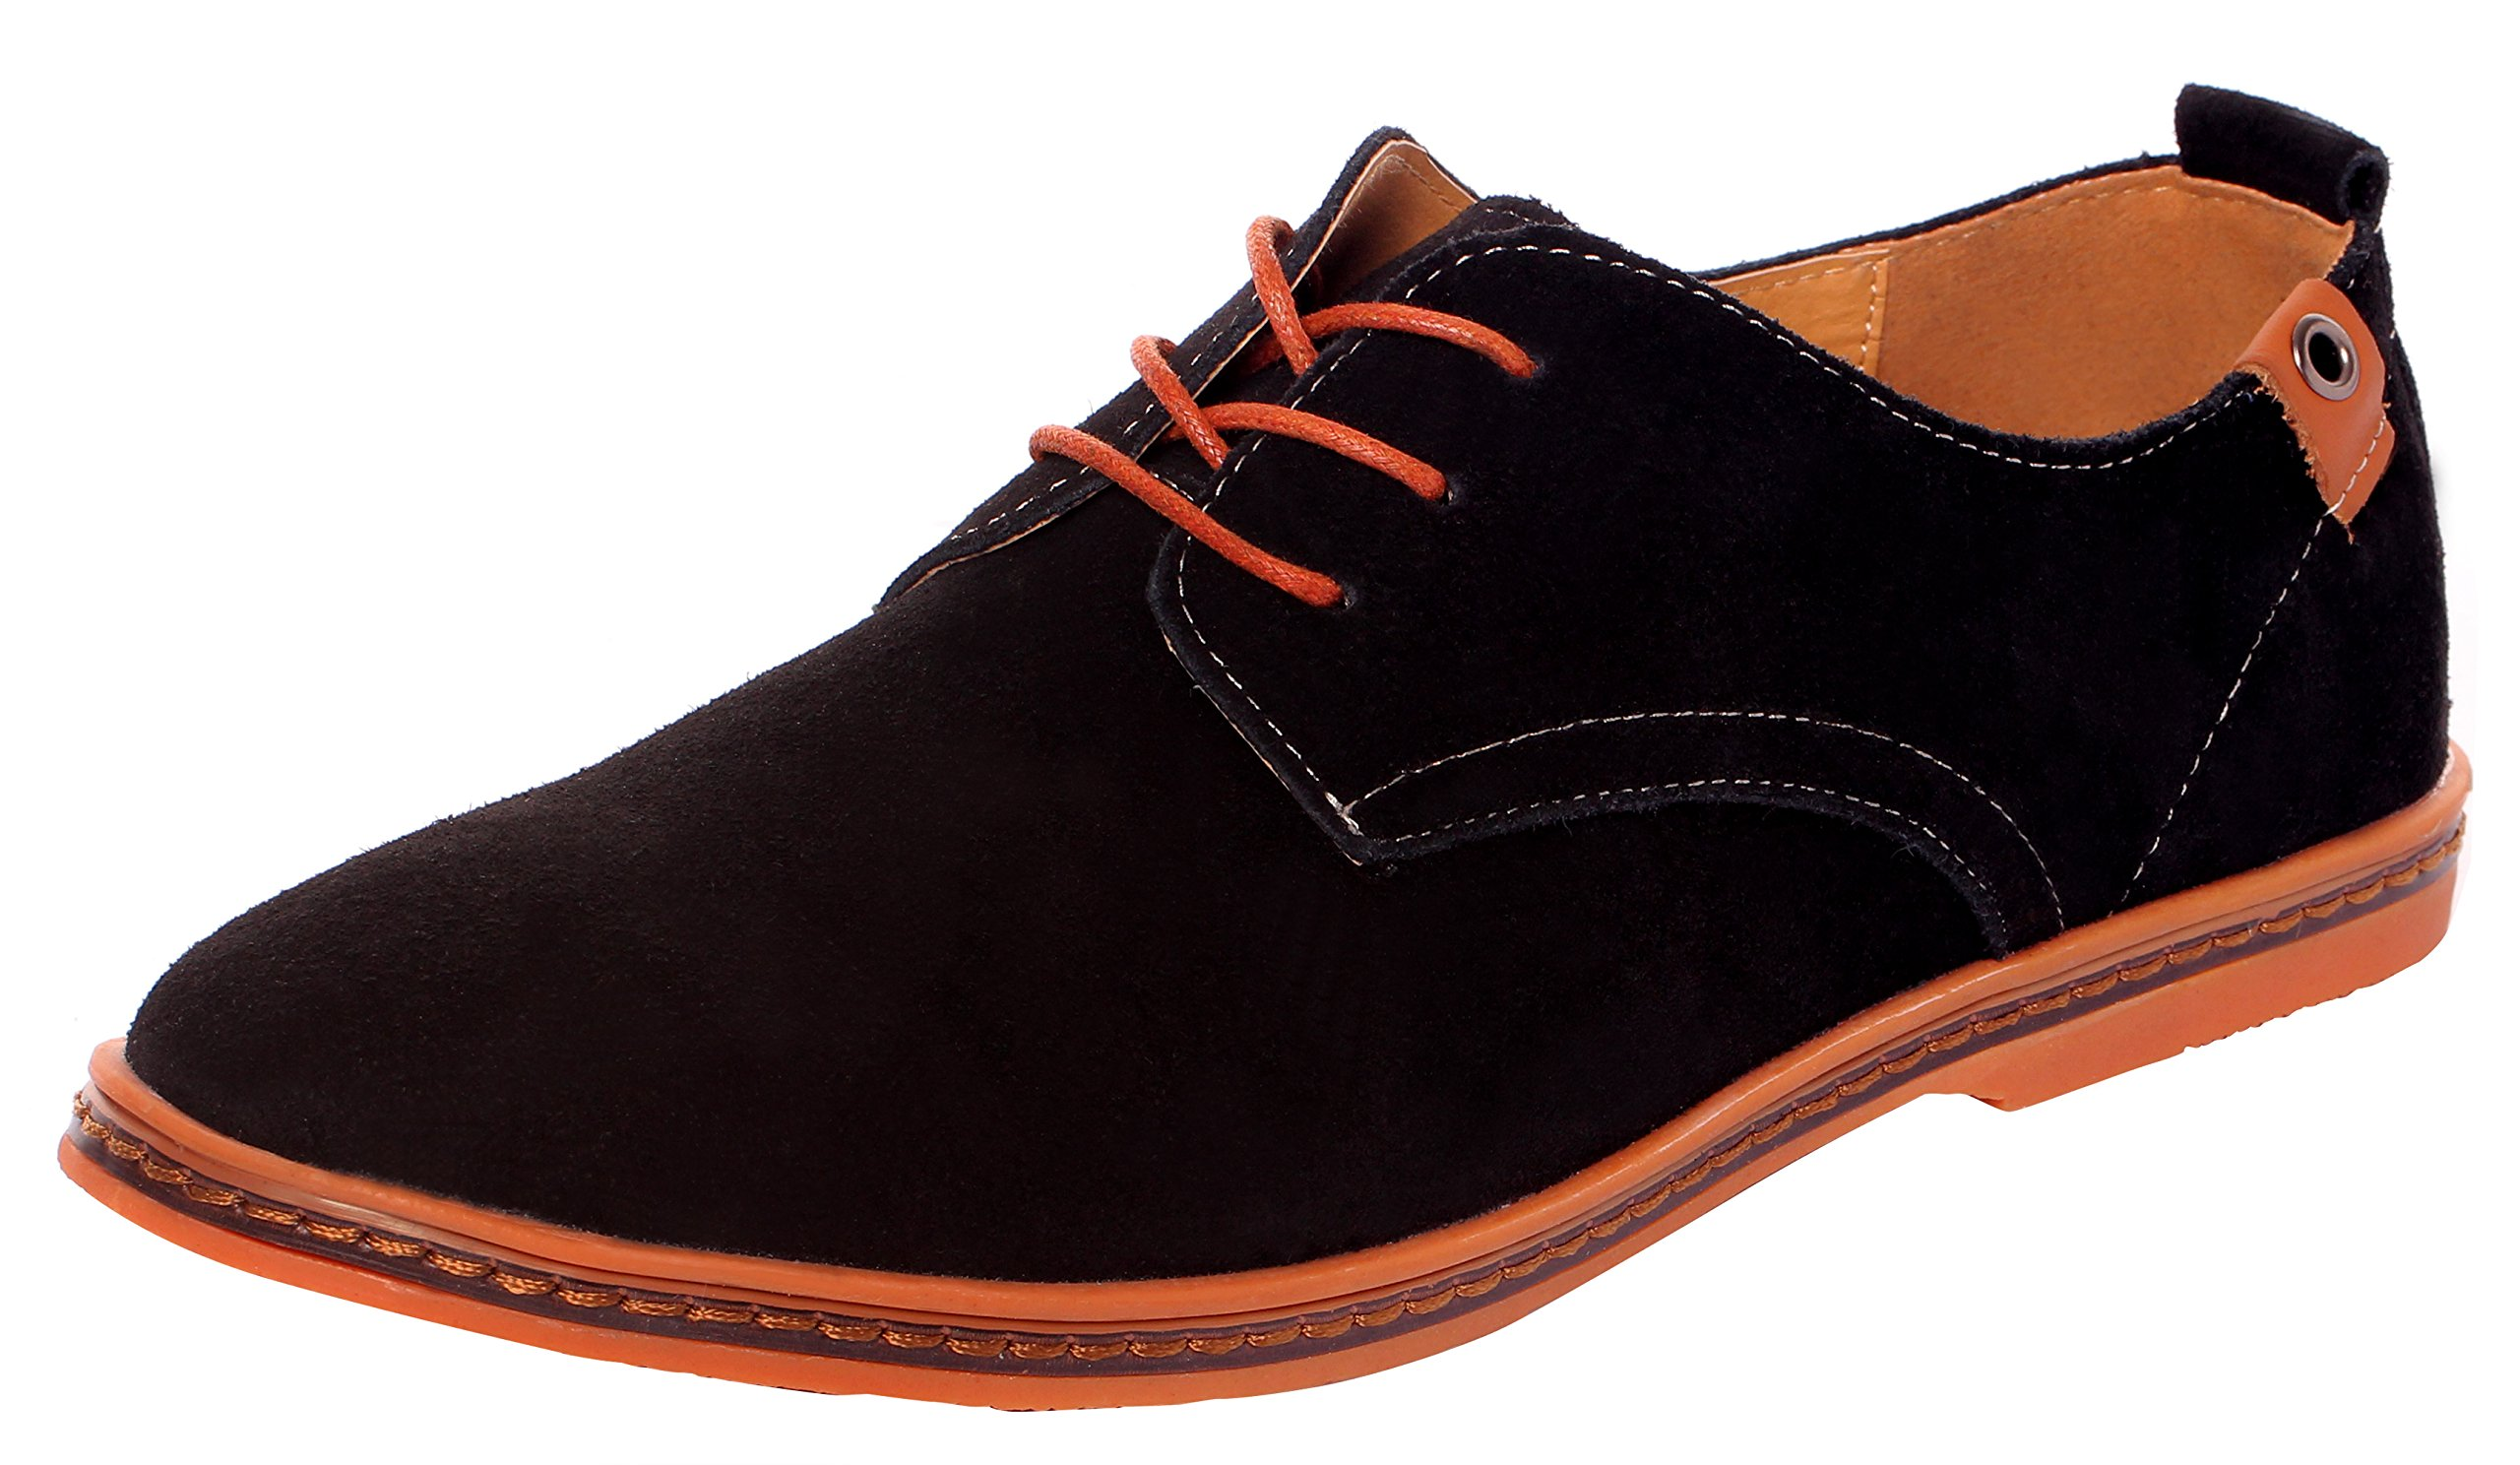 Serene Men's Casual Leather Lace up Soft Breathable Fashion Oxfords (8D(M) US, Black)